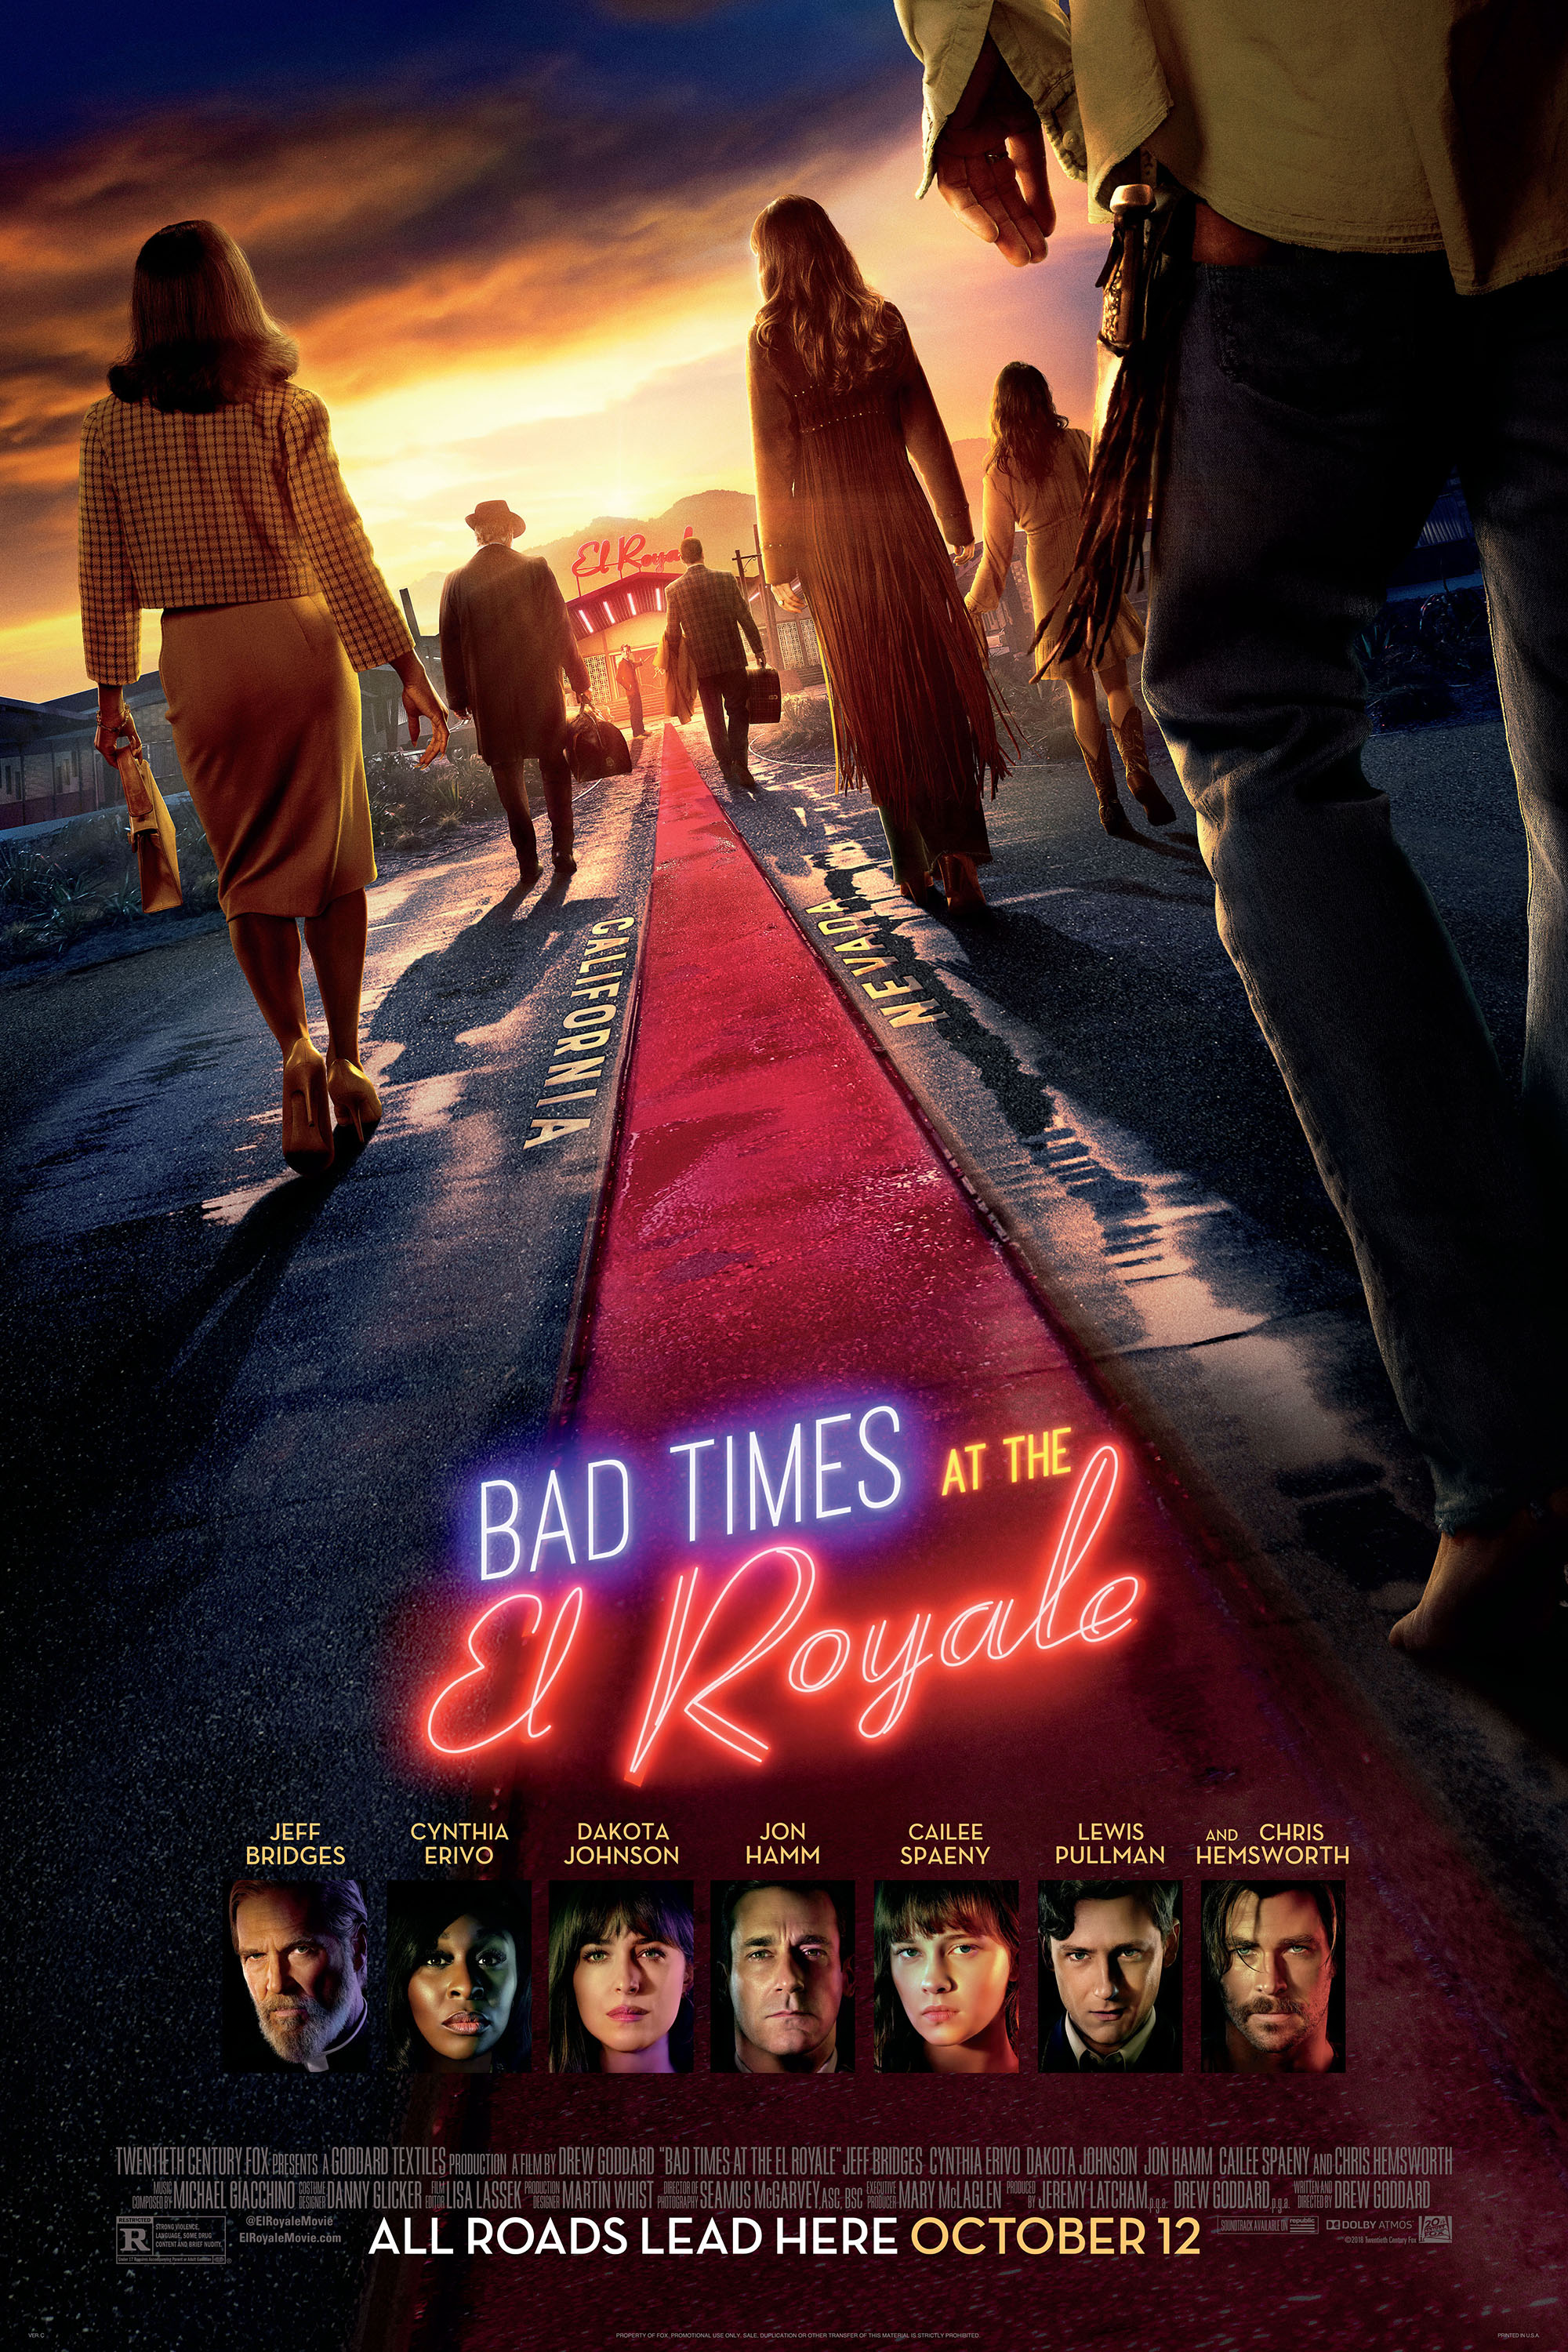 Poster for Bad Times at the El Royale